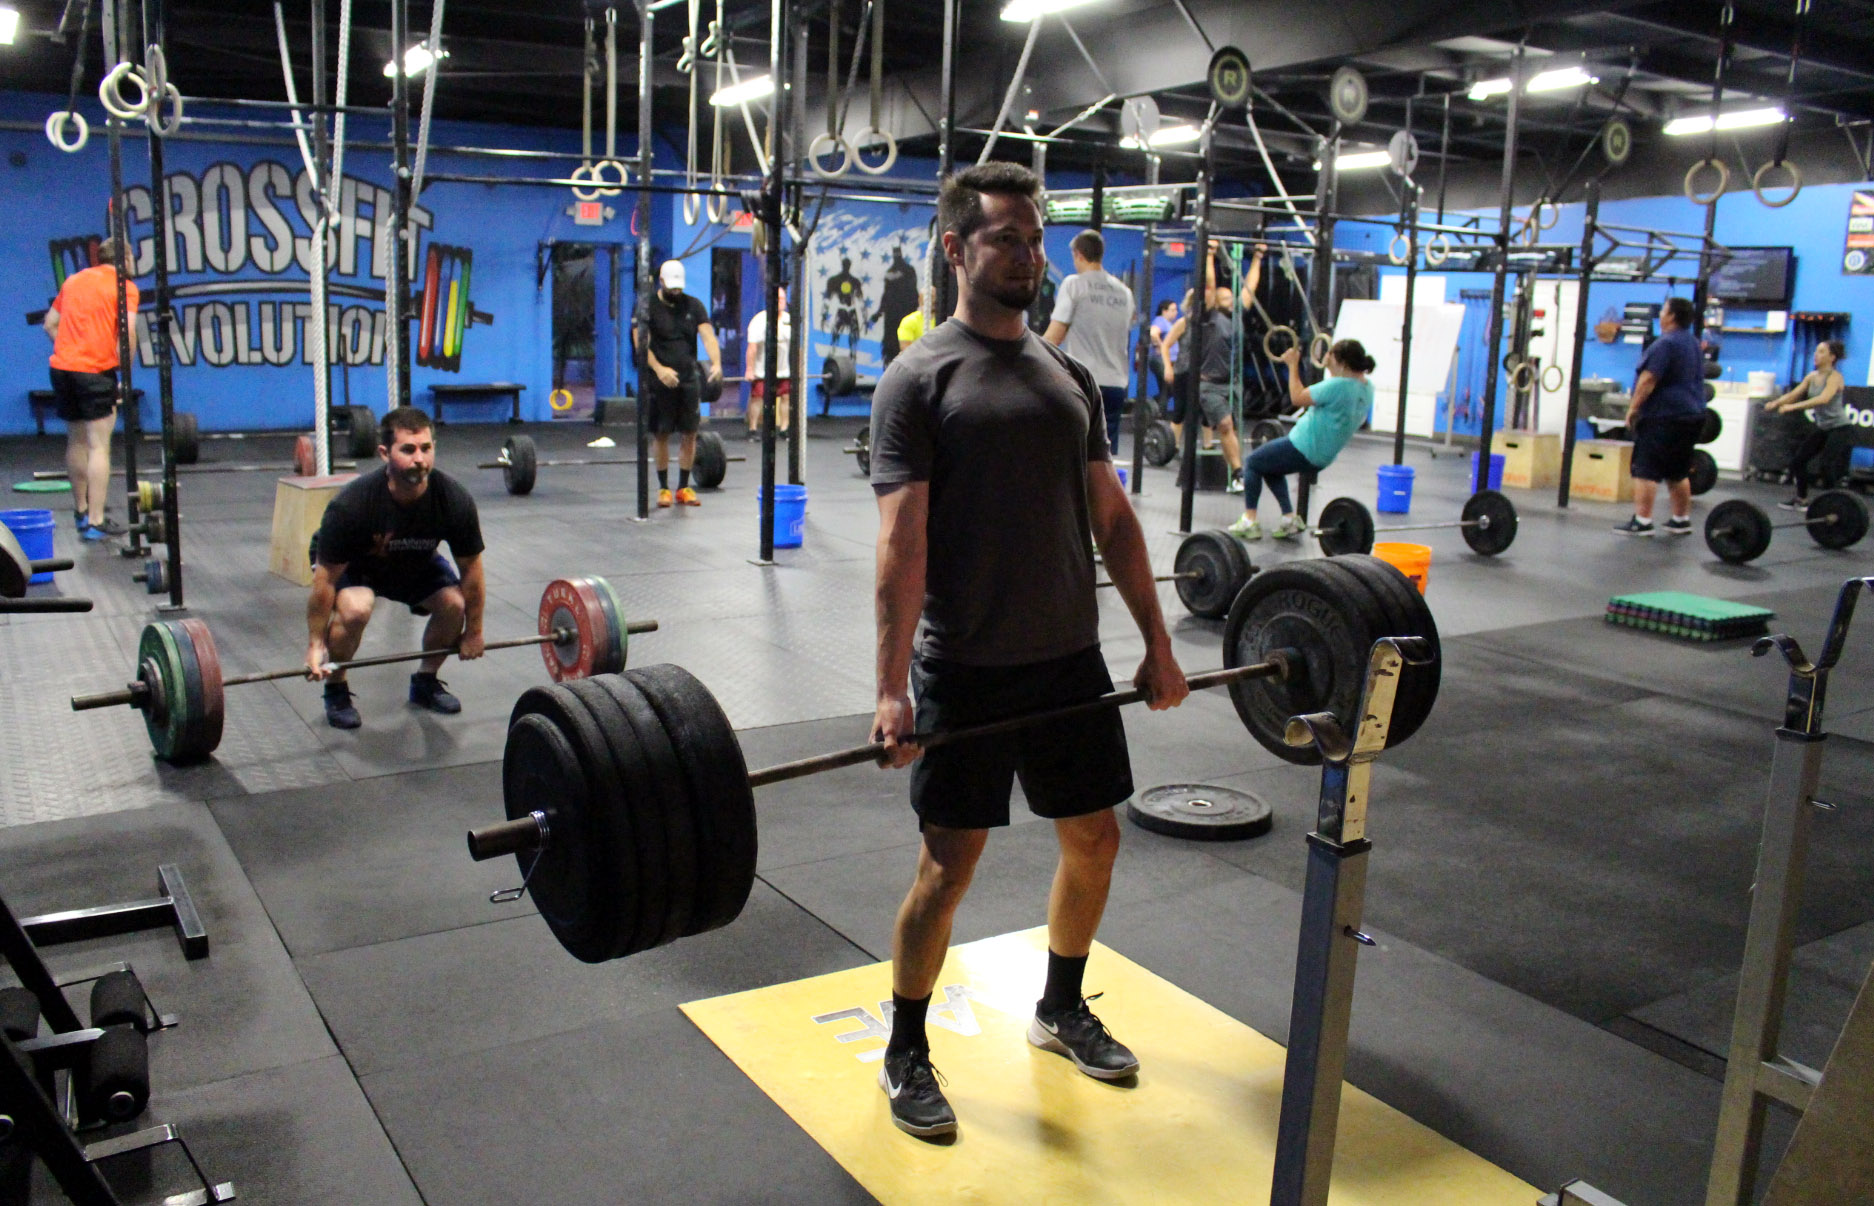 Monday, May 13, 2019 — CrossFit Evolution